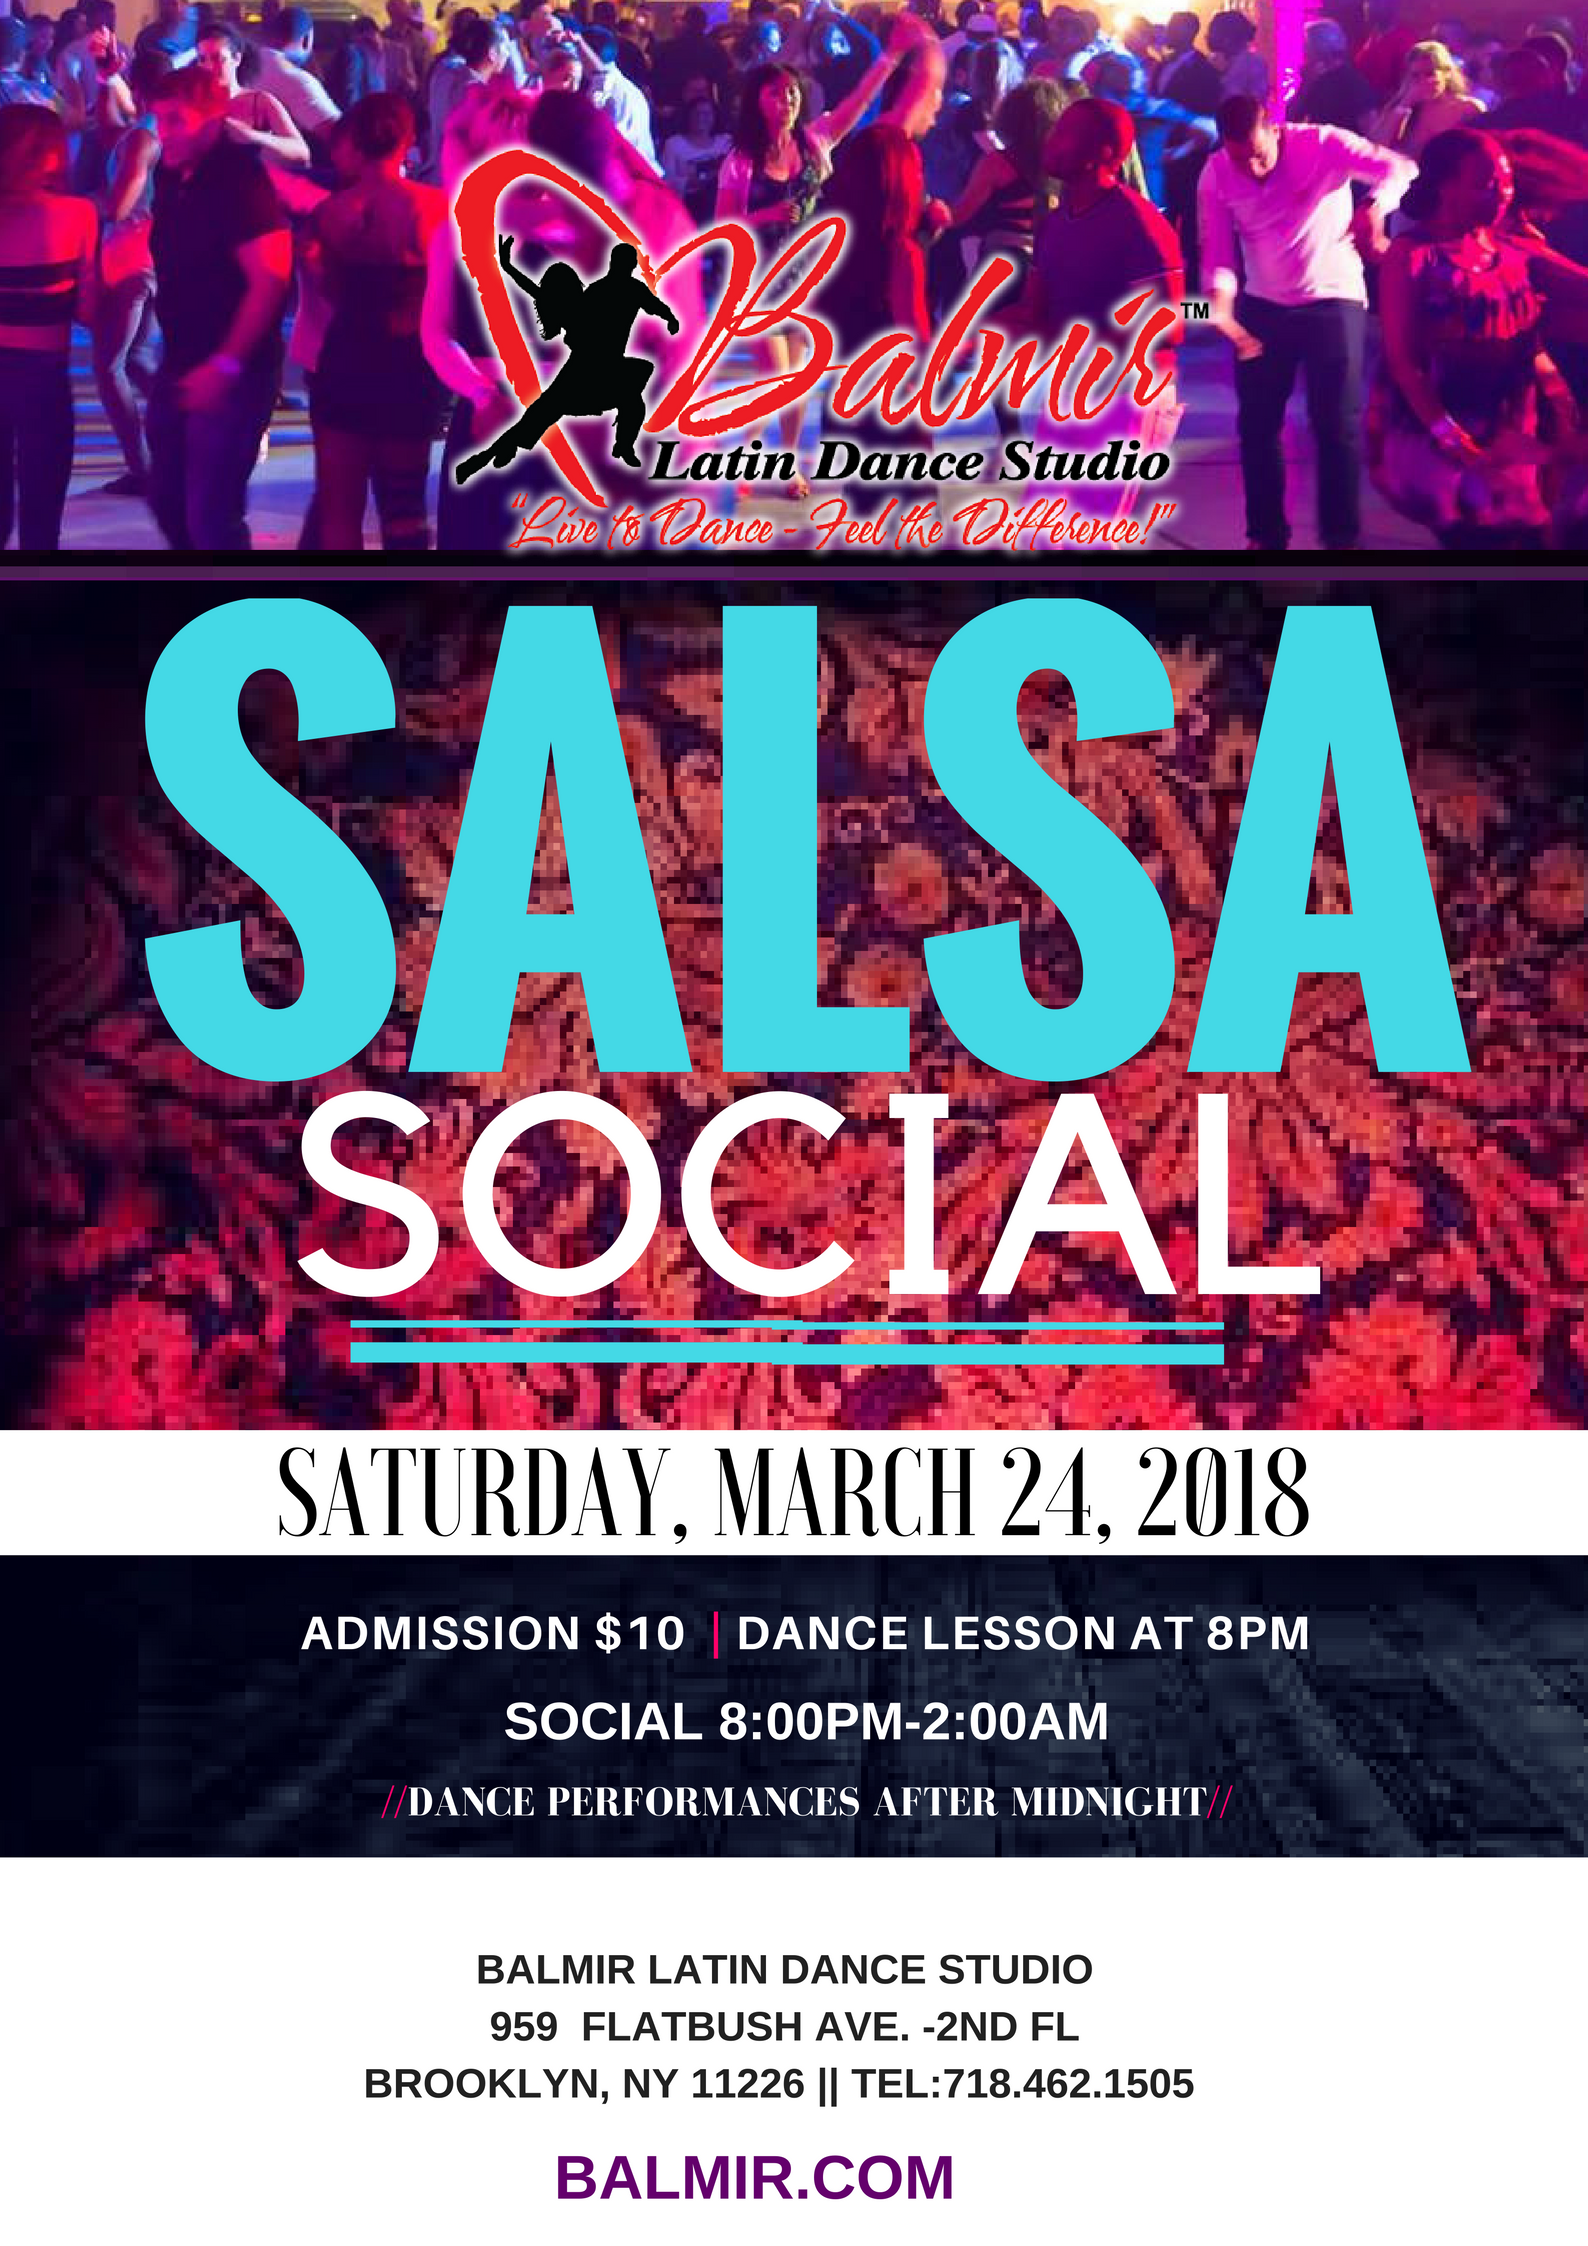 Salsa Social Dance Party at Balmir Latin Dance Studio in Brooklyn NY Saturday March 24, 2018